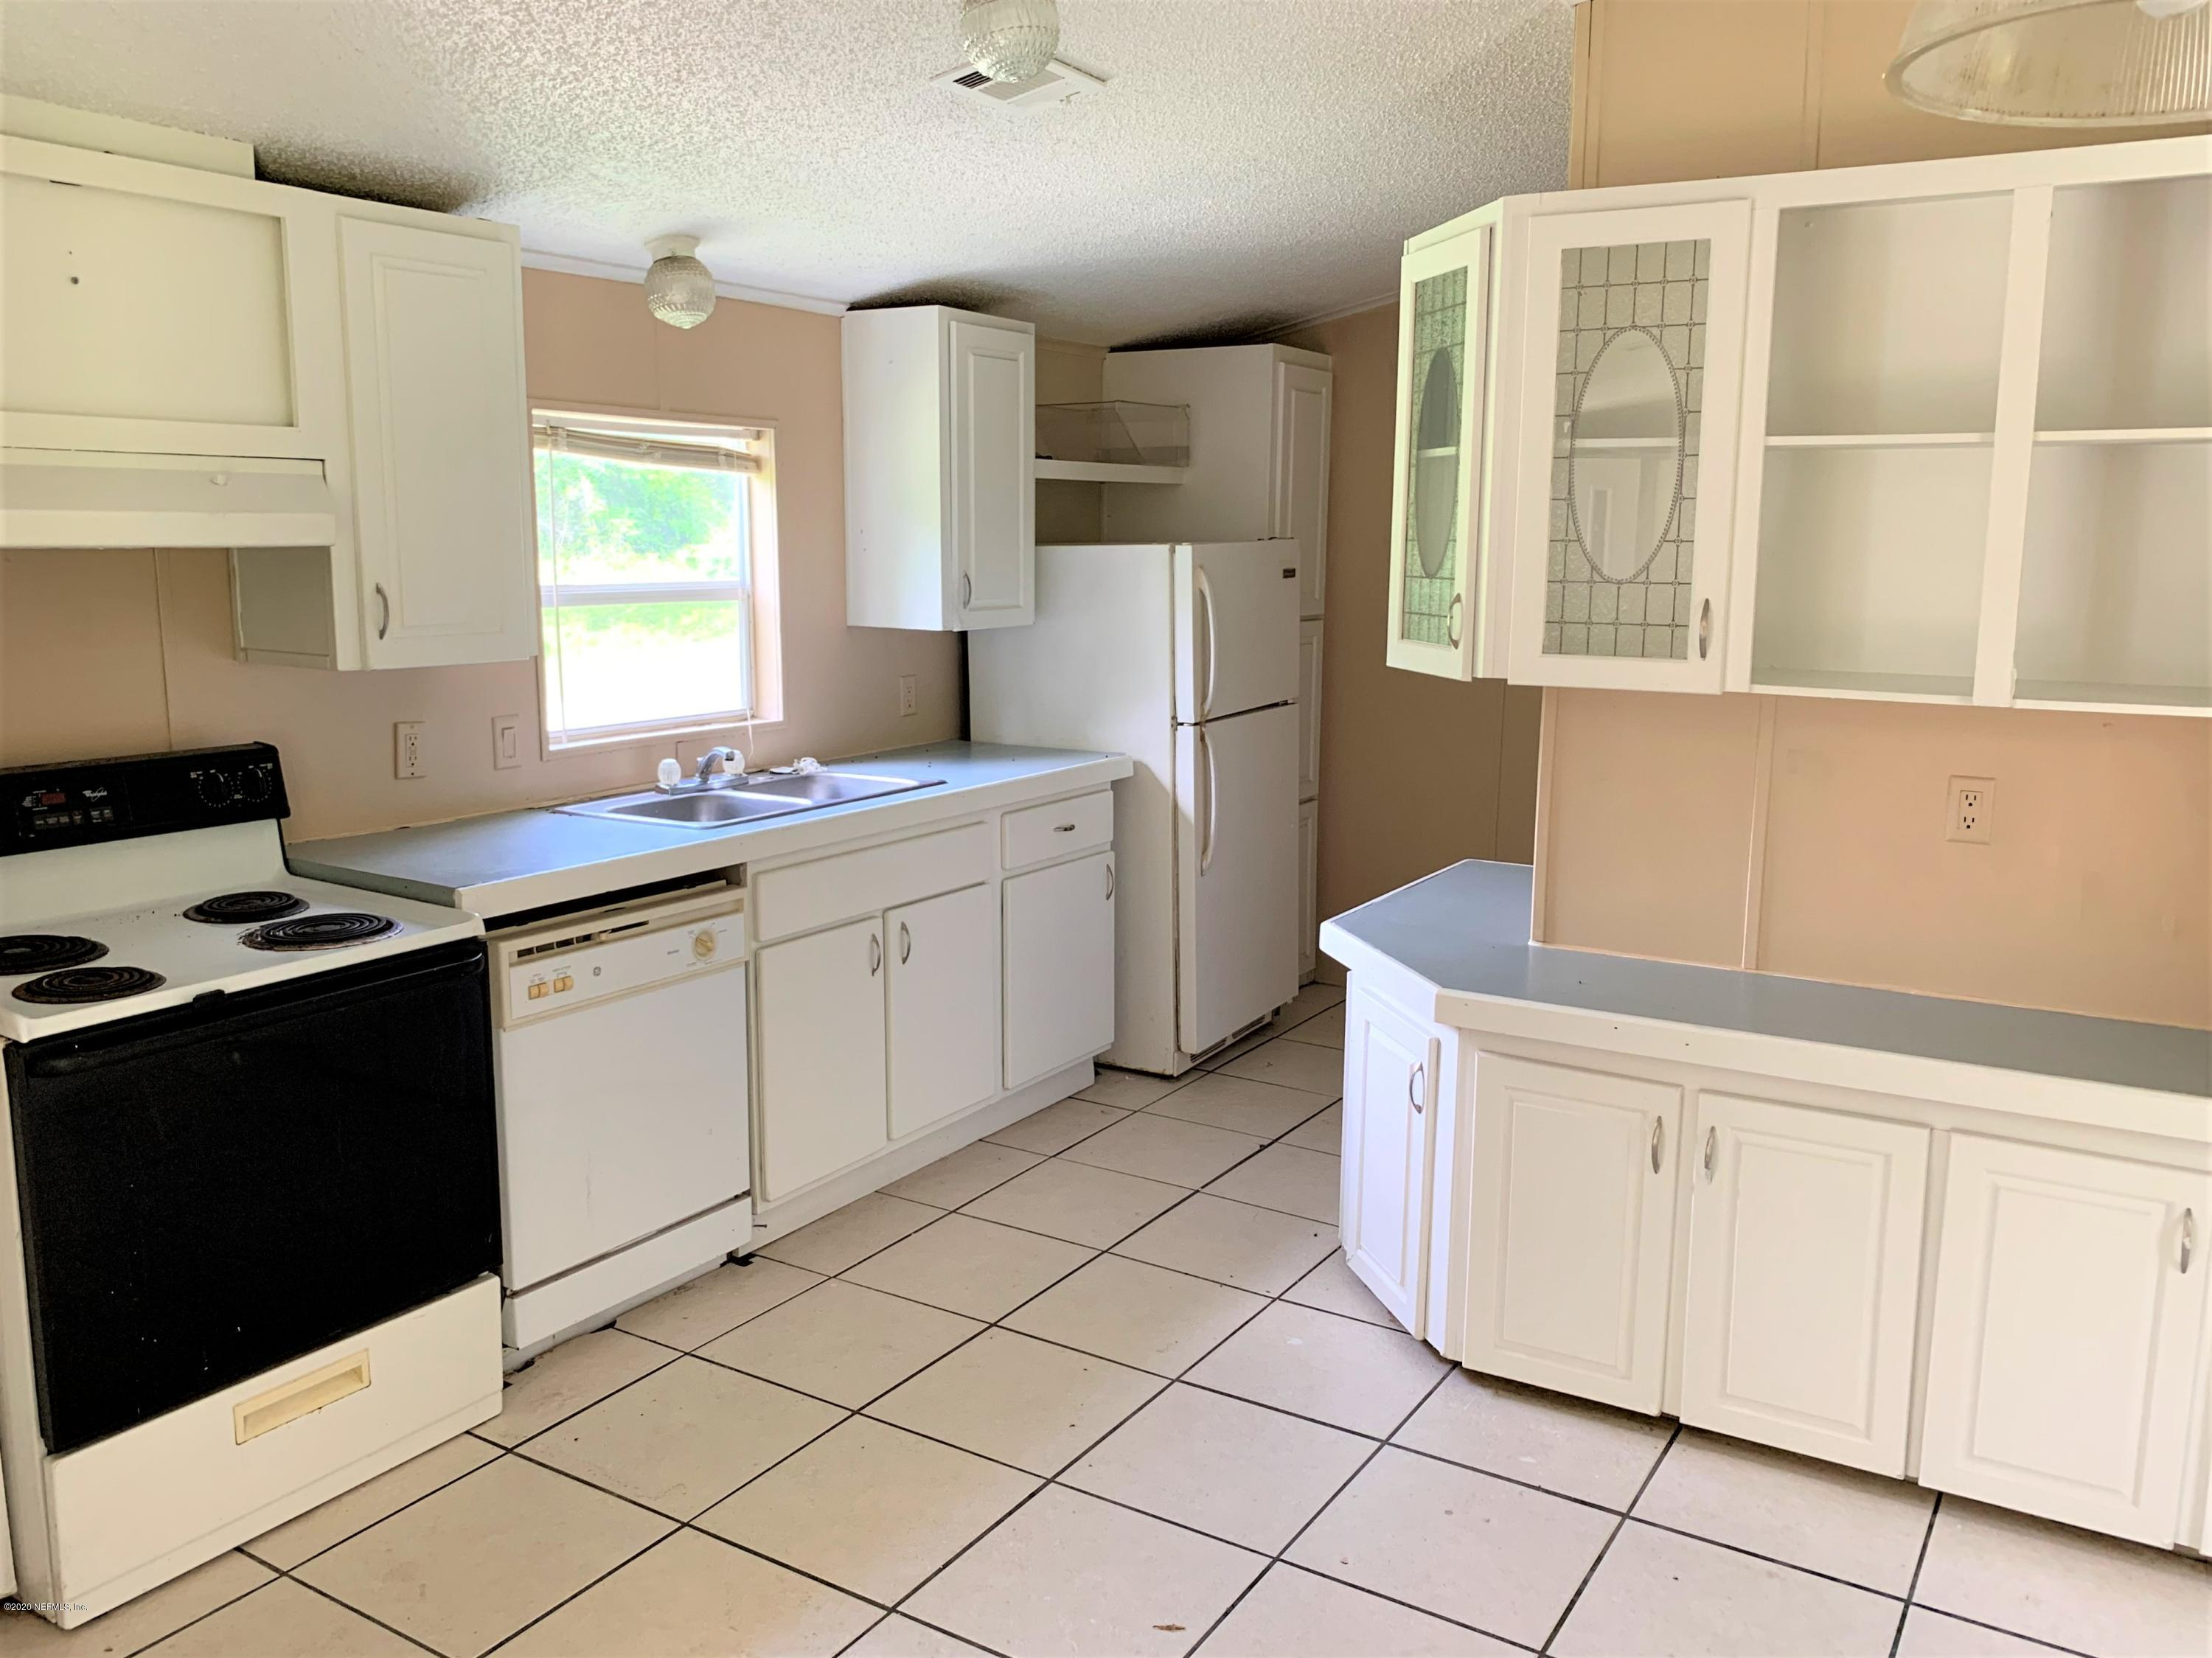 112 CLICK, SATSUMA, FLORIDA 32189, 2 Bedrooms Bedrooms, ,2 BathroomsBathrooms,Residential,For sale,CLICK,1043468